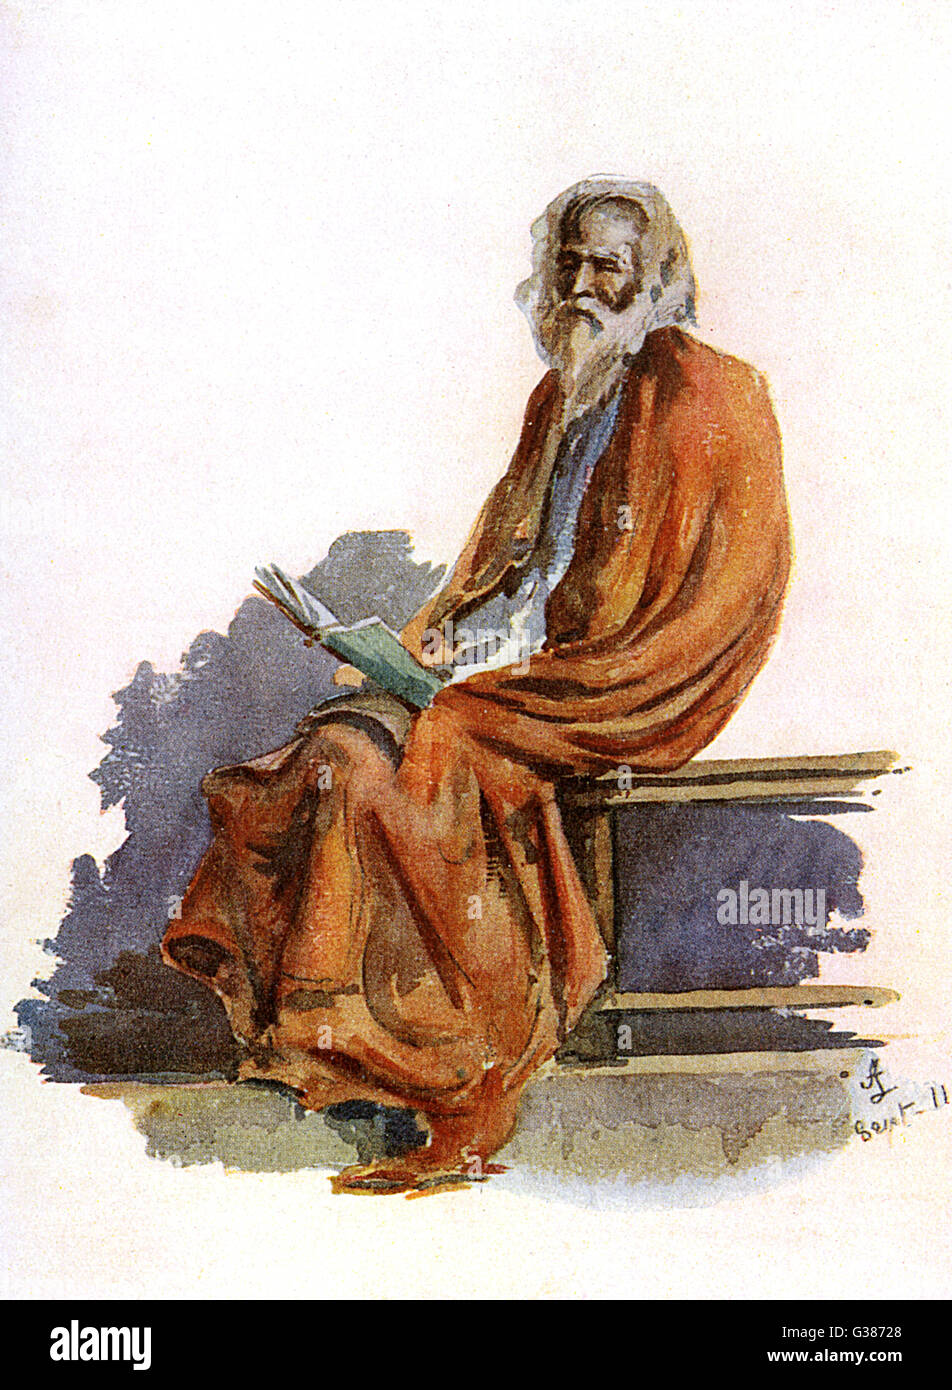 A learned Indian saddhu  (ascetic)         Date: 1914 - Stock Image